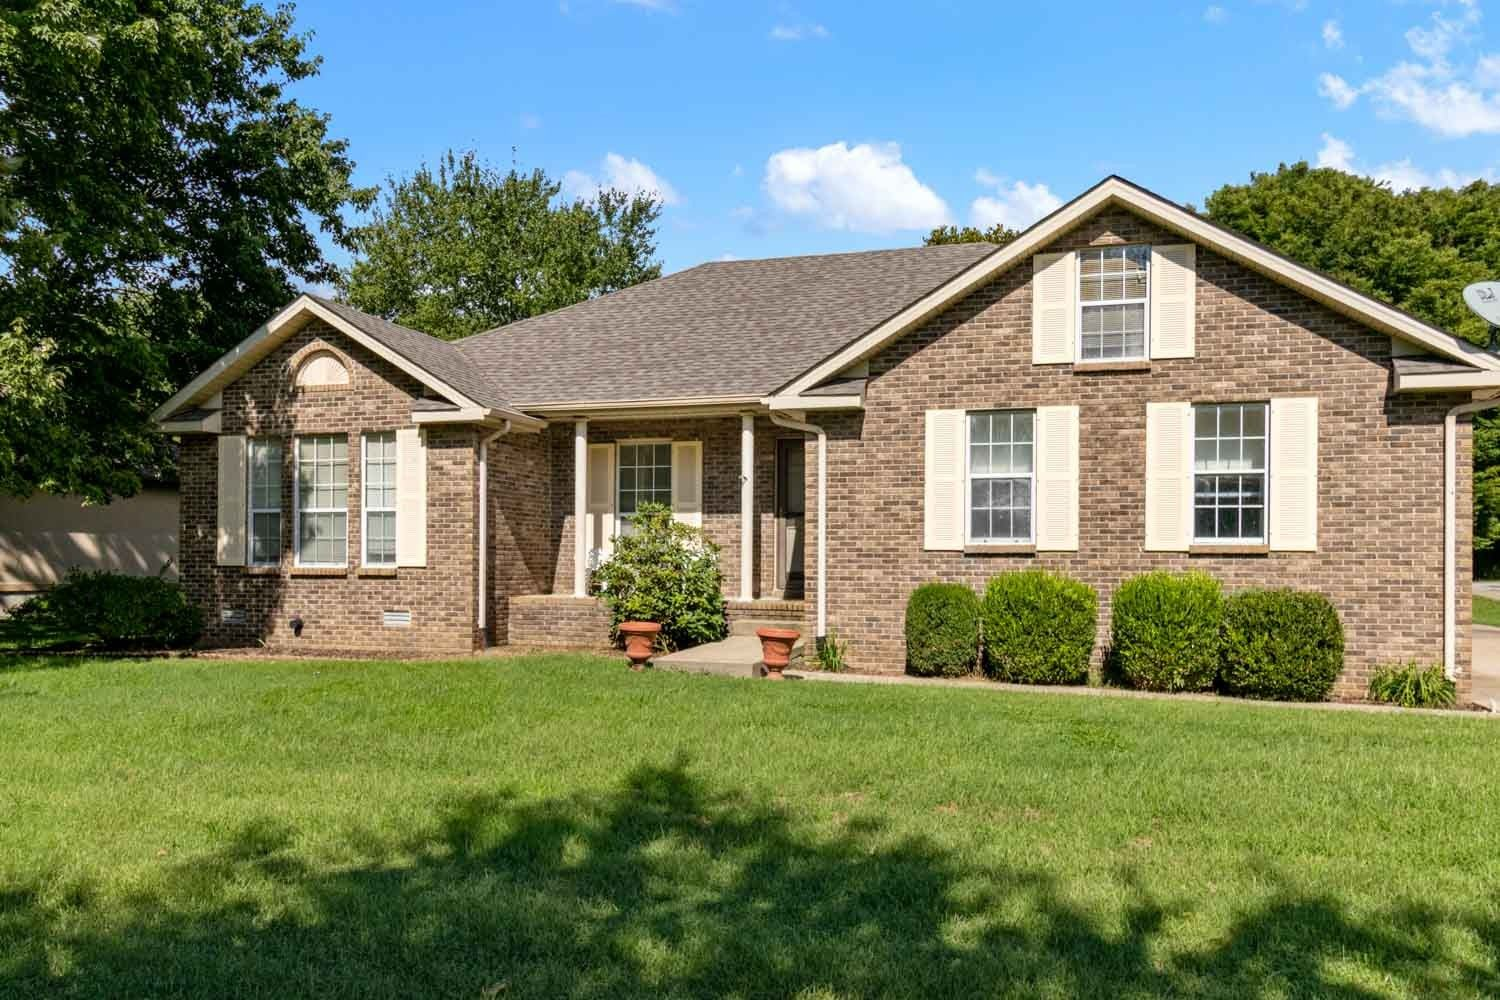 2721 Learcrest Ct, Thompsons Station, TN 37179 - MLS#: 2294318